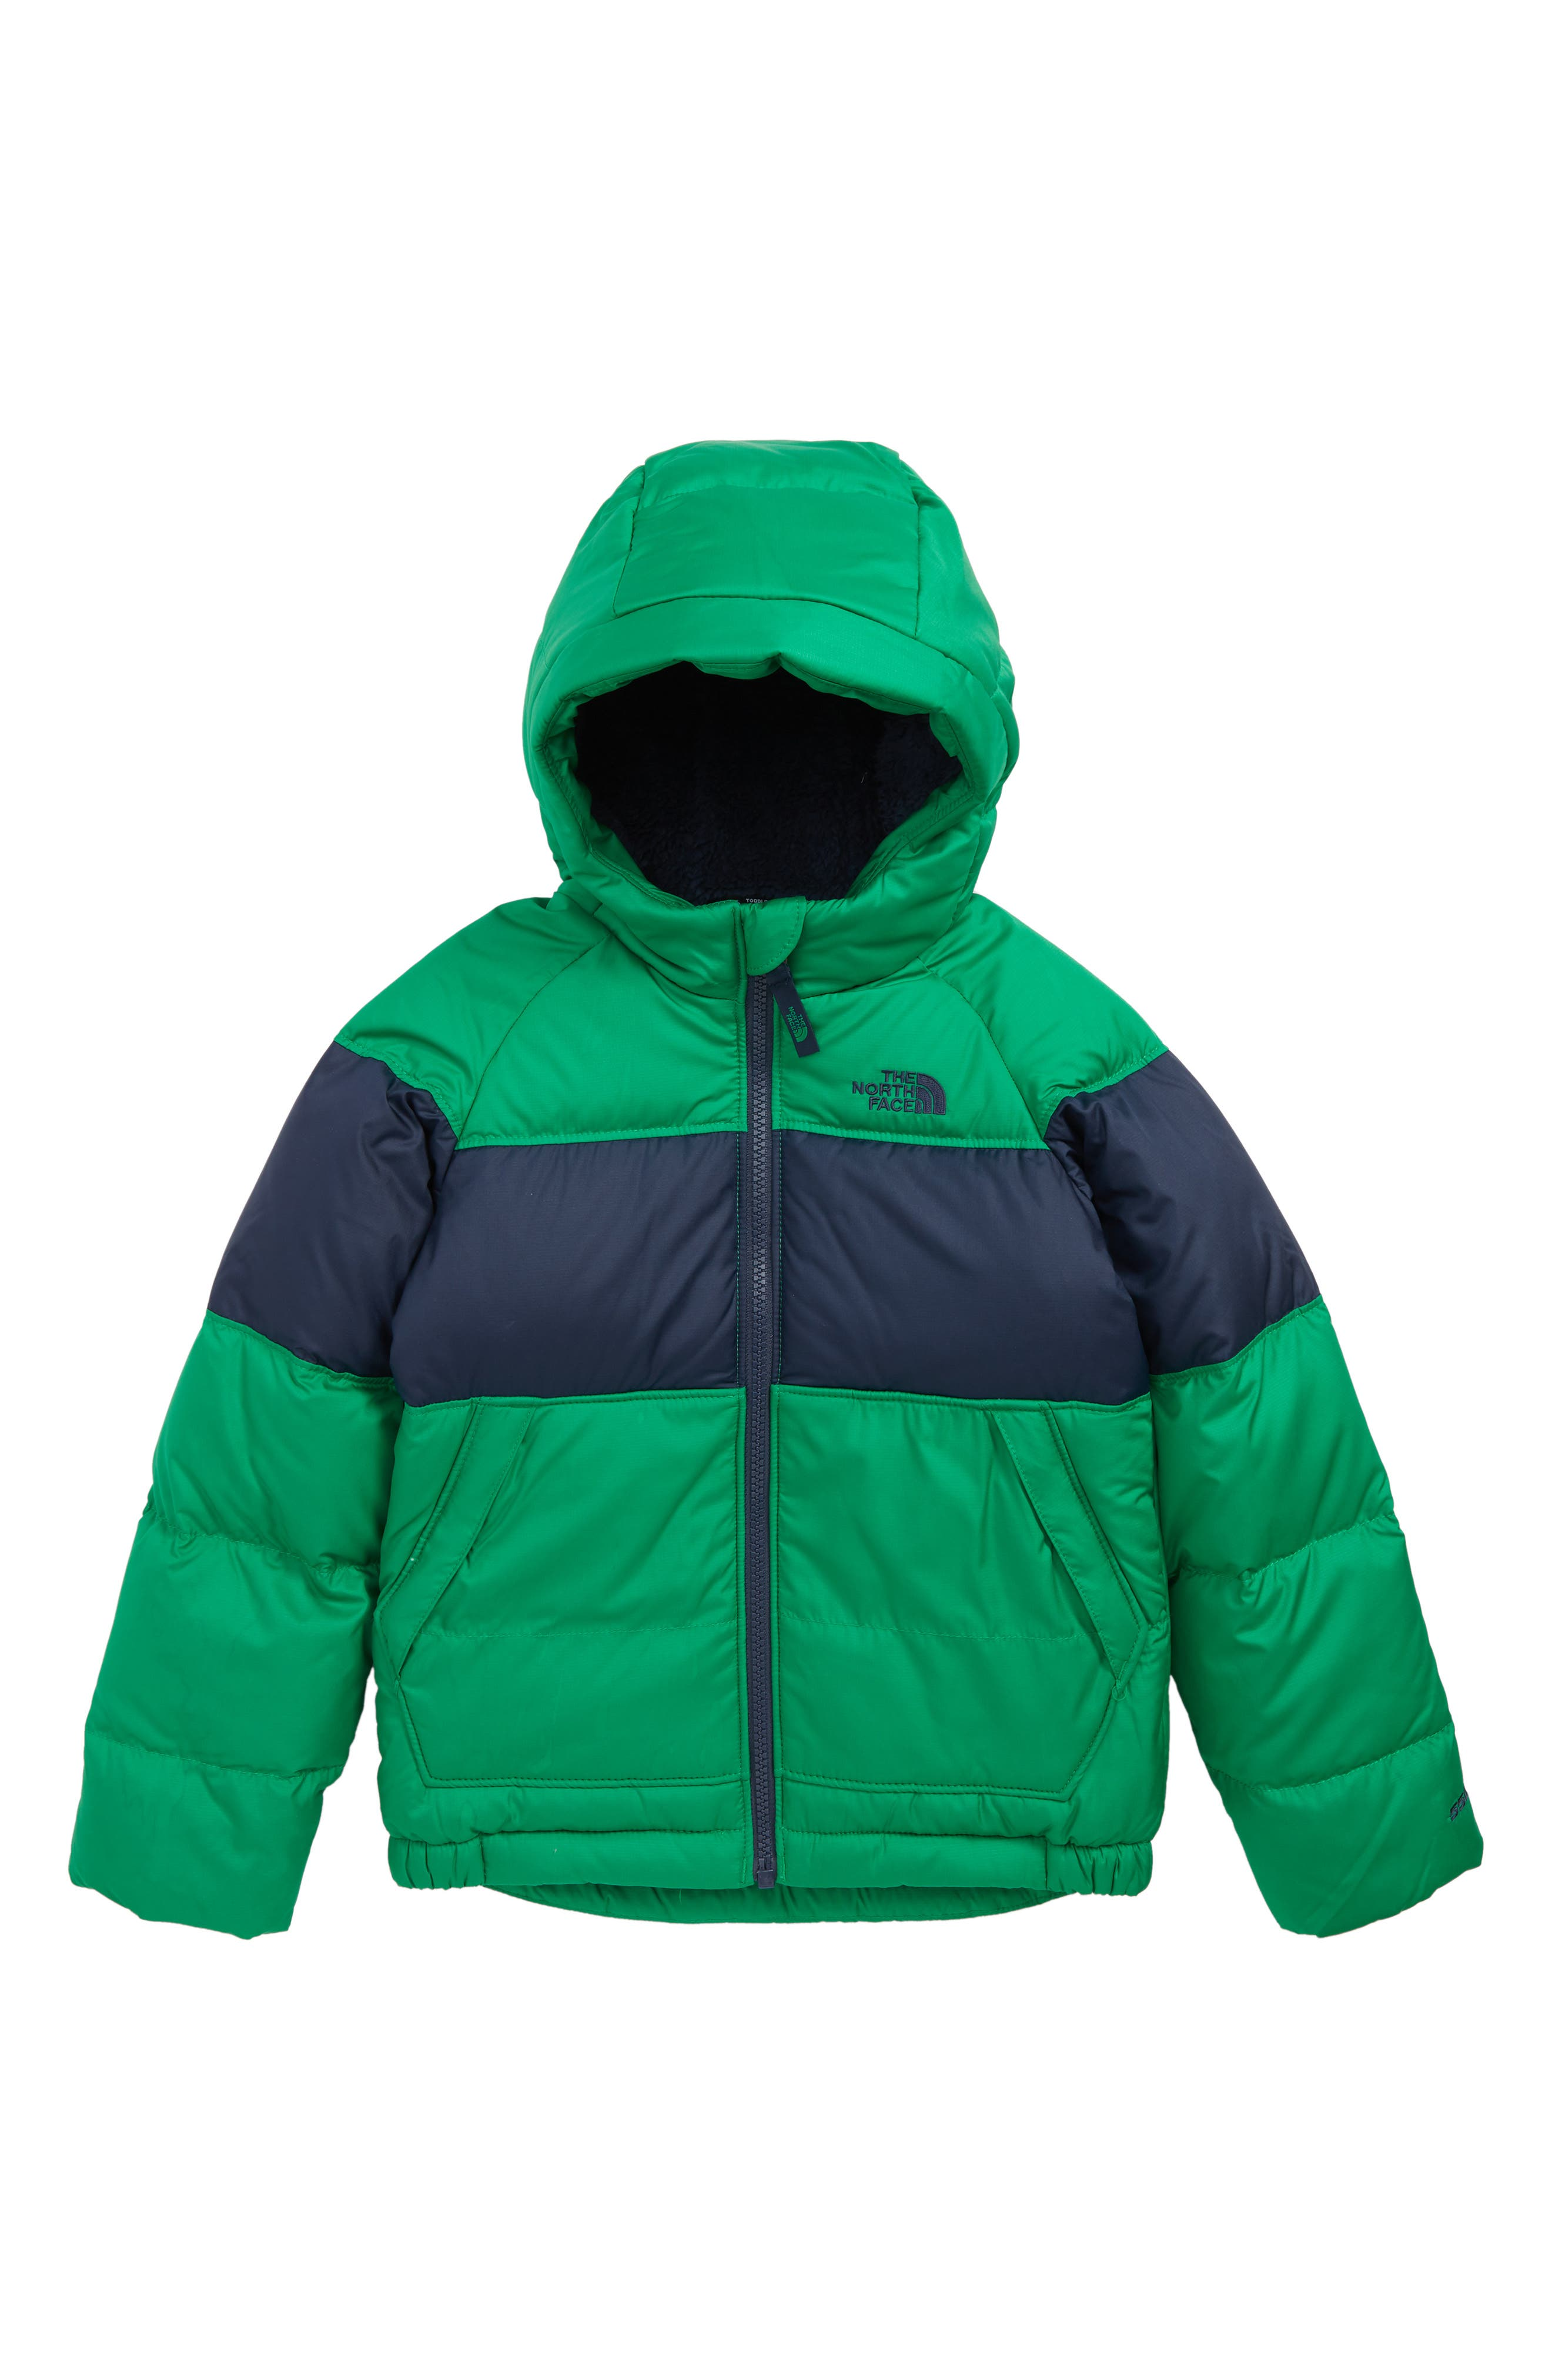 Moondoggy 2.0 Water Repellent Down Jacket,                             Main thumbnail 1, color,                             PRIMARY GREEN